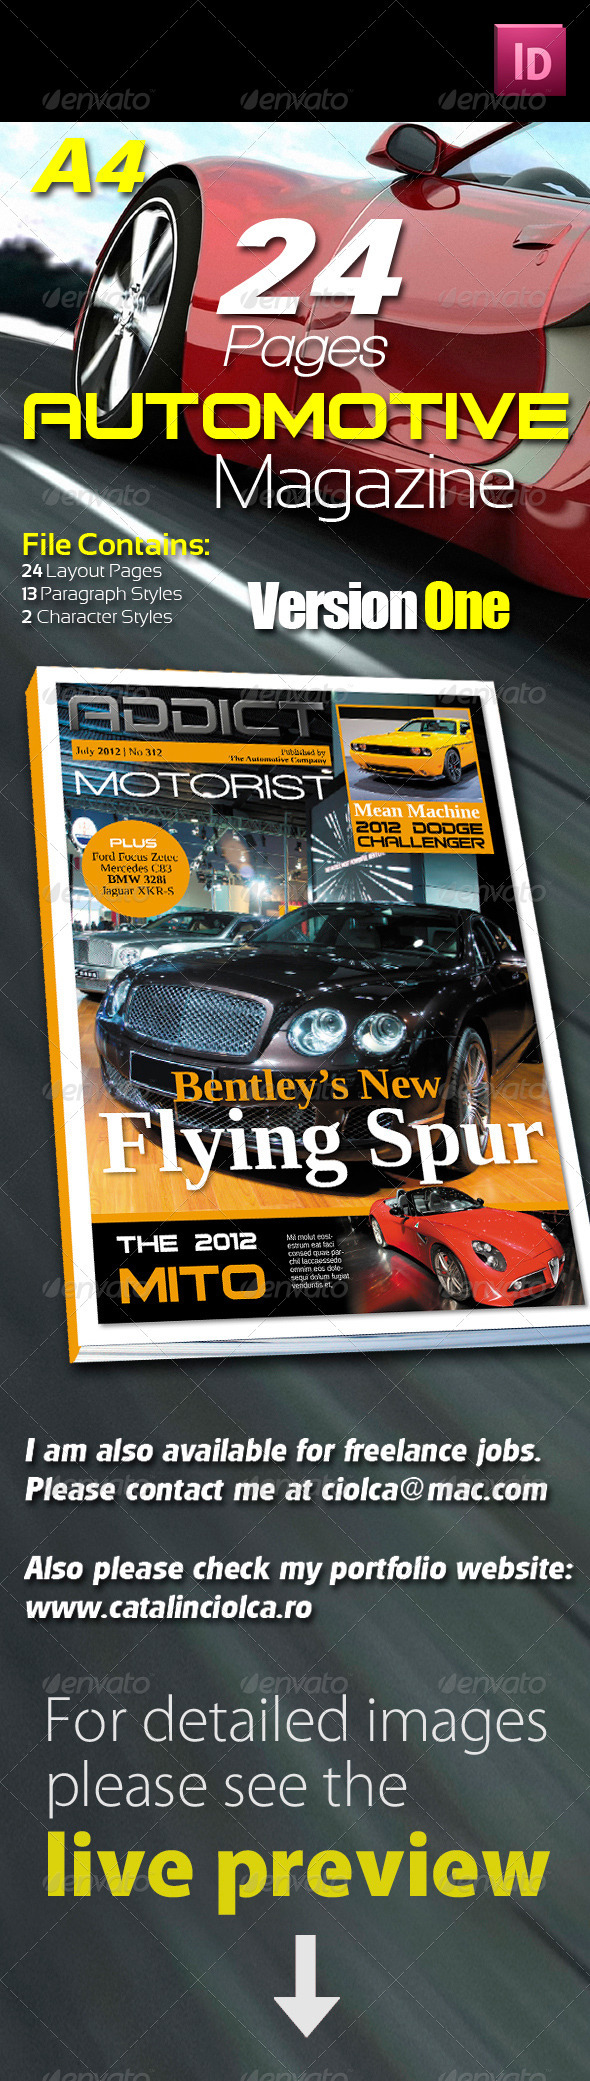 24 Pages Automotive Magazine Version One - Magazines Print Templates